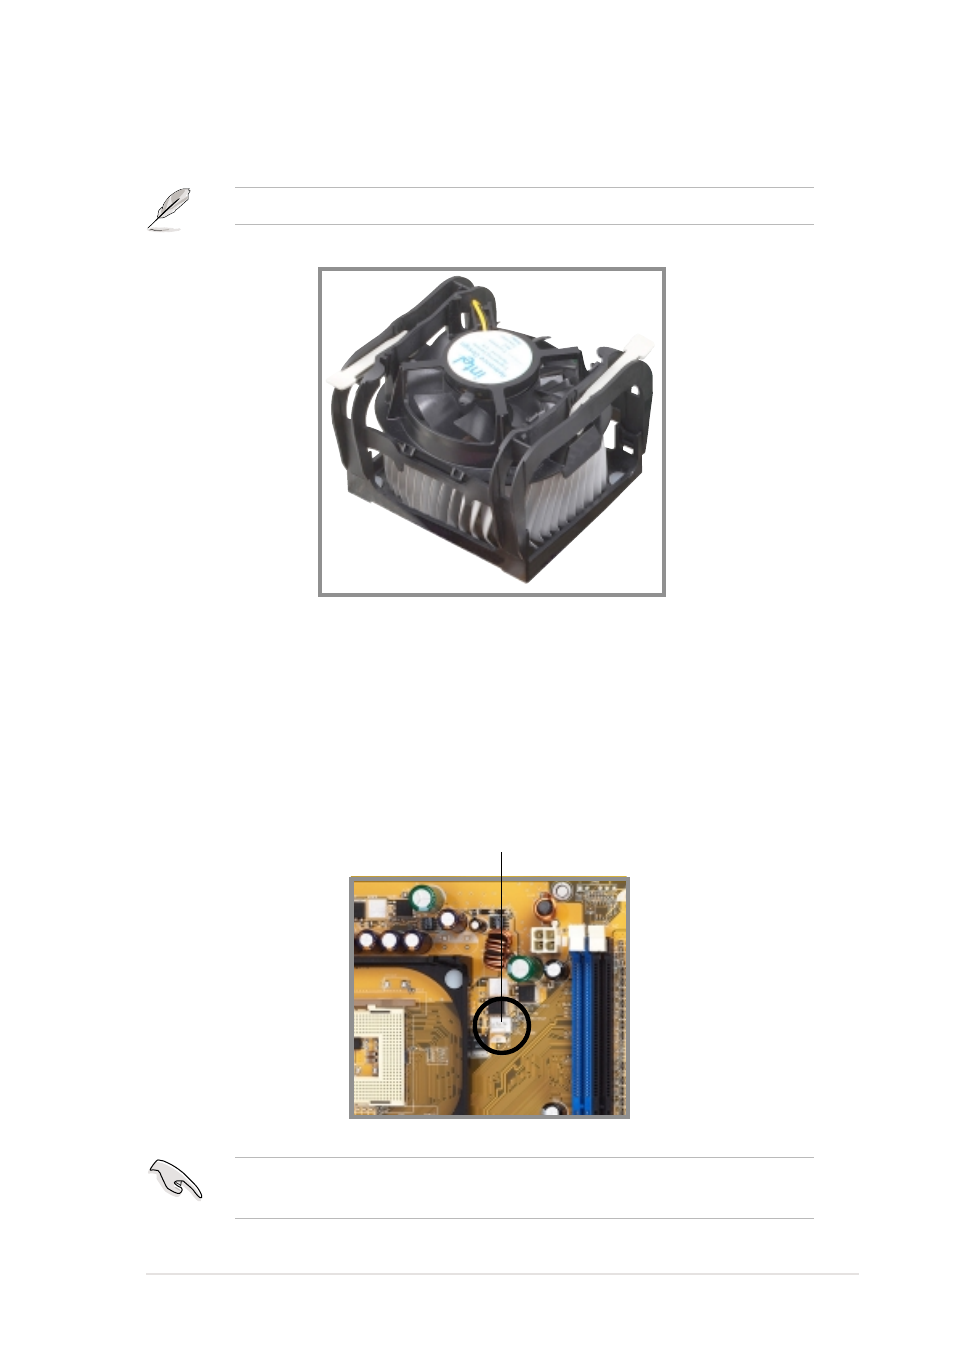 4 connecting the cpu fan cable | HP Compaq X07 Desktop Gaming PC User Manual  | Page 23 / 47